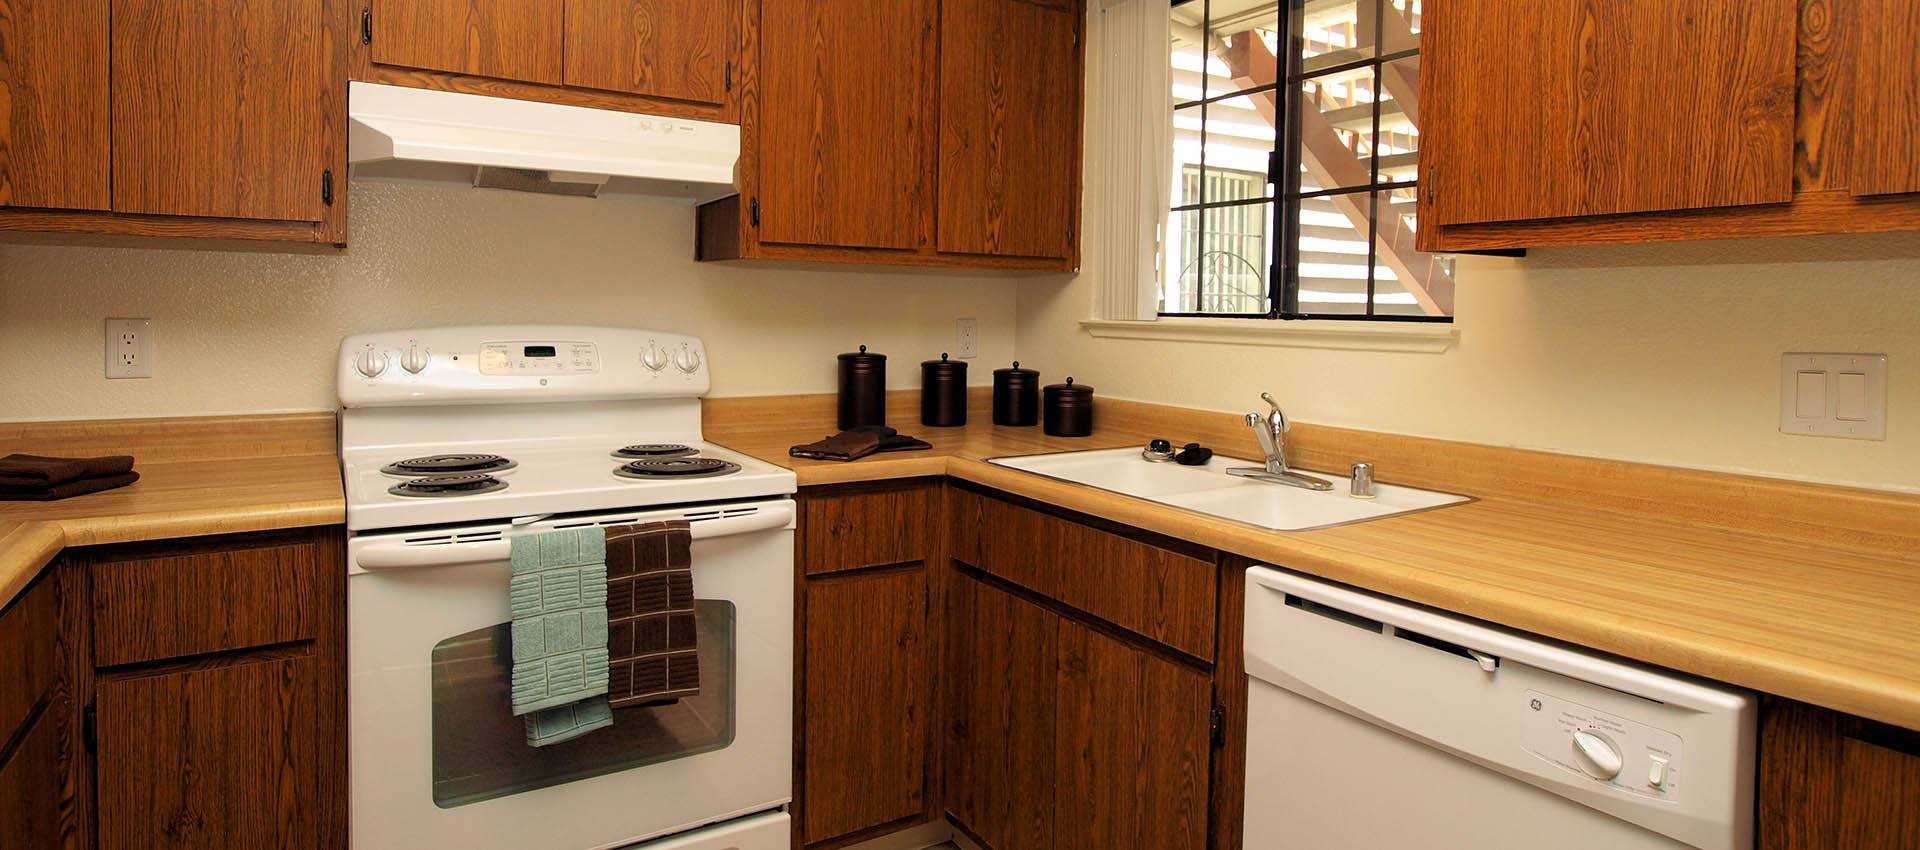 Standard Kitchen at Hidden Lake Condominium Rentals in Sacramento, California